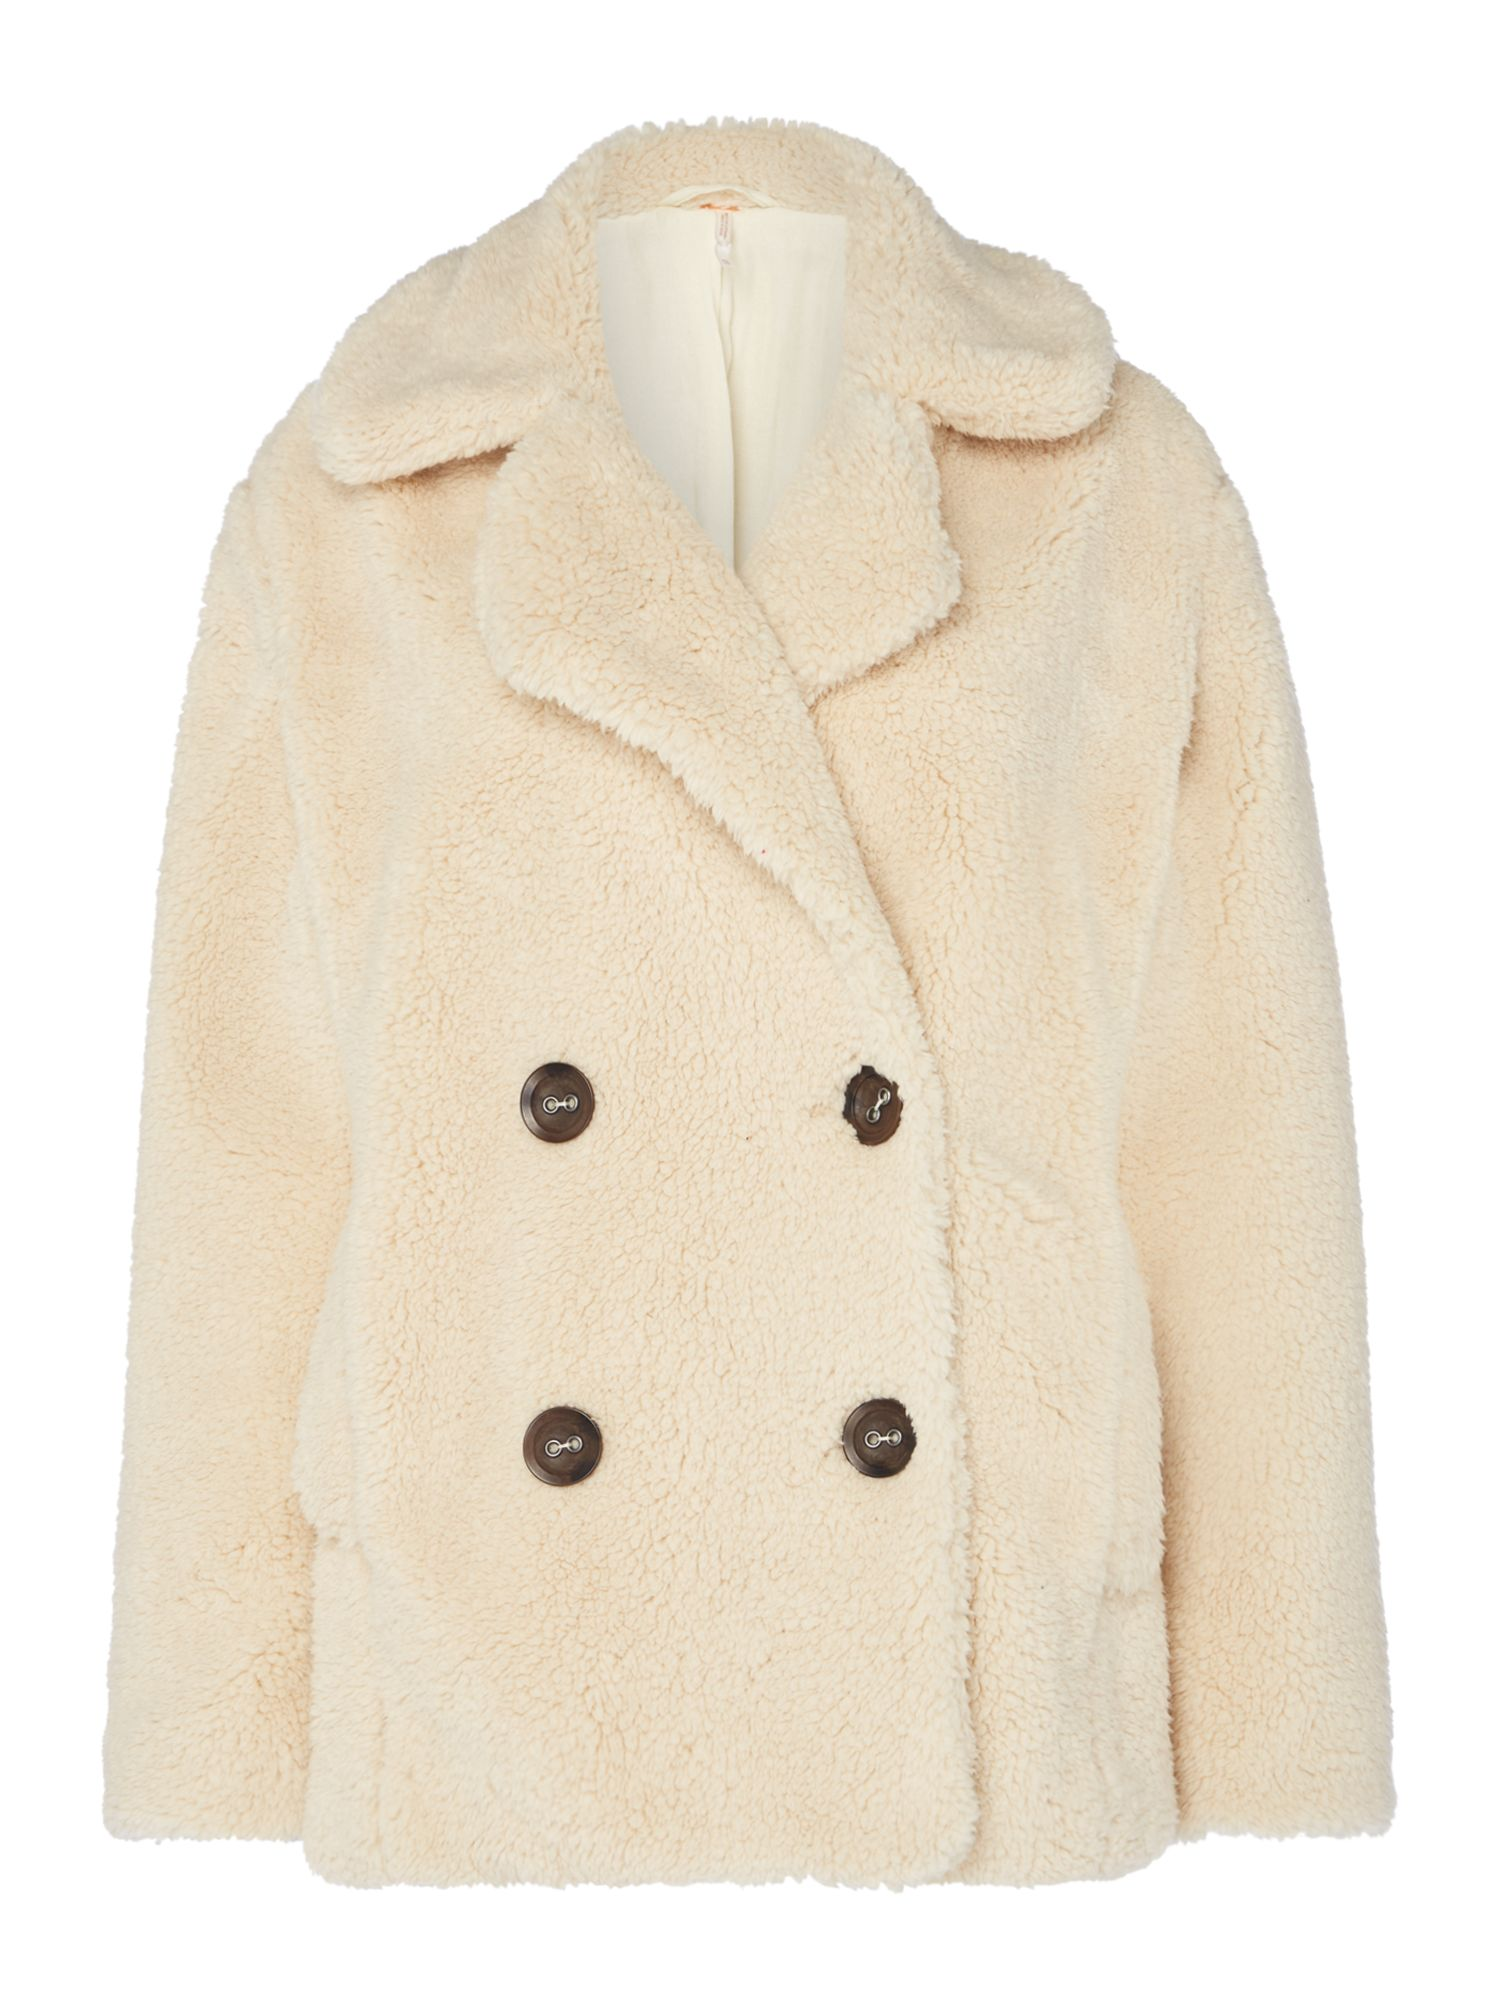 Free People Notched Teddy Style Buttun Up Pea Coat, White